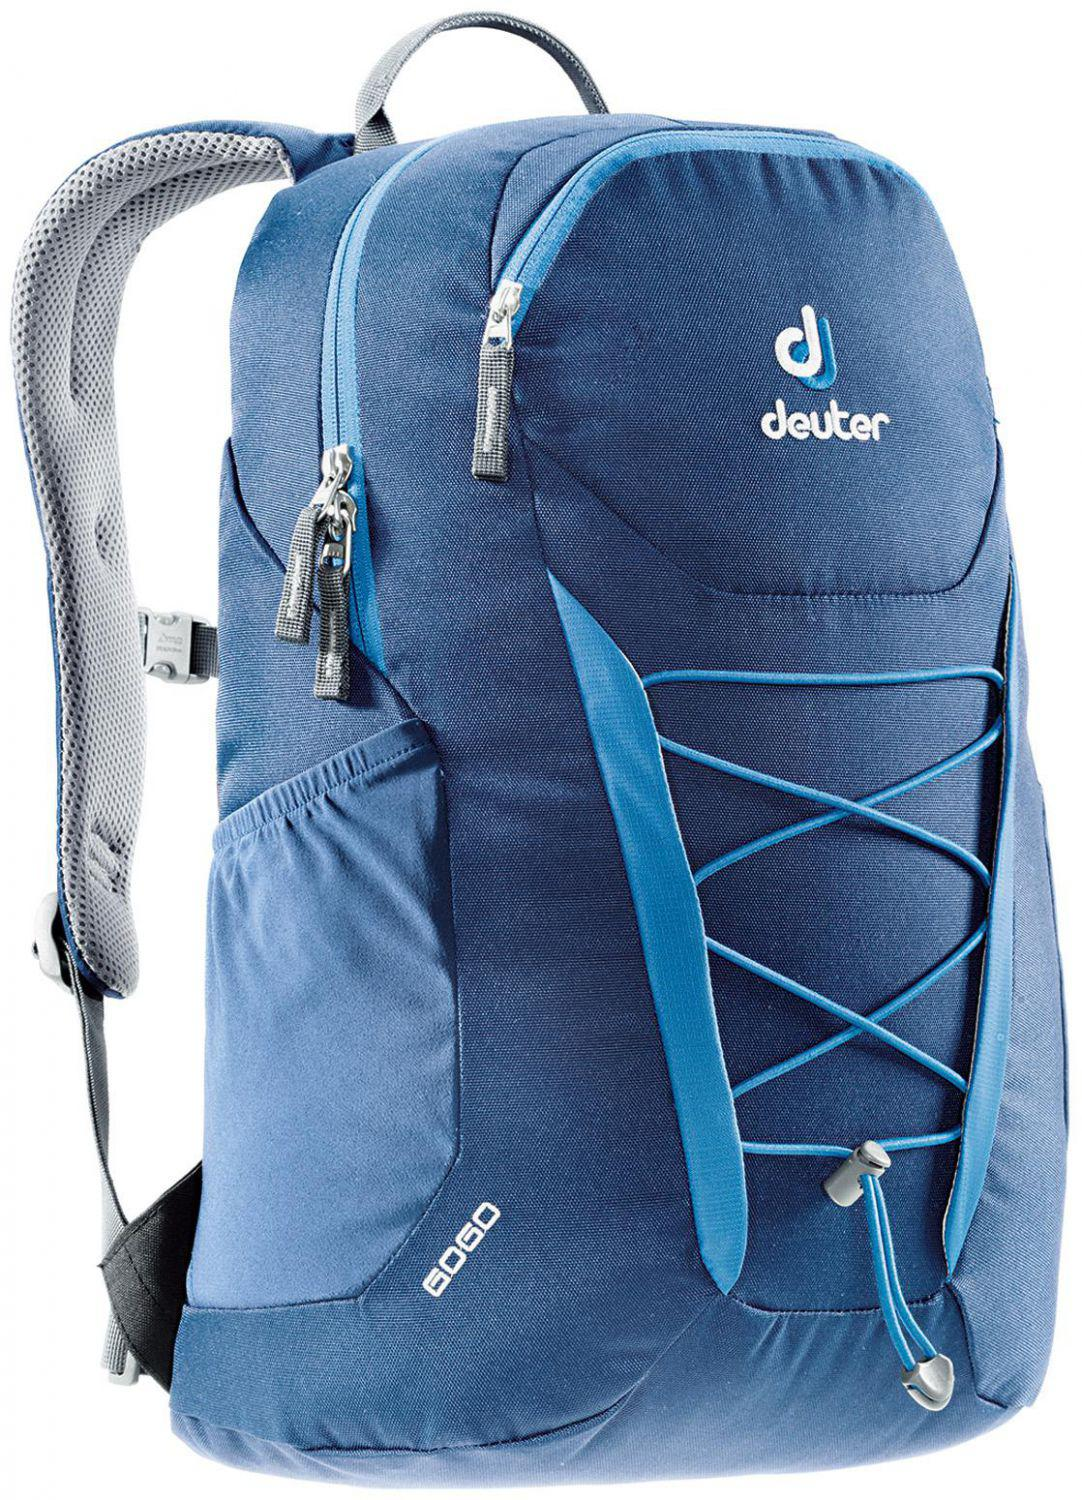 Deuter Go Go Daypack (Farbe: 1370 midnight/bay)